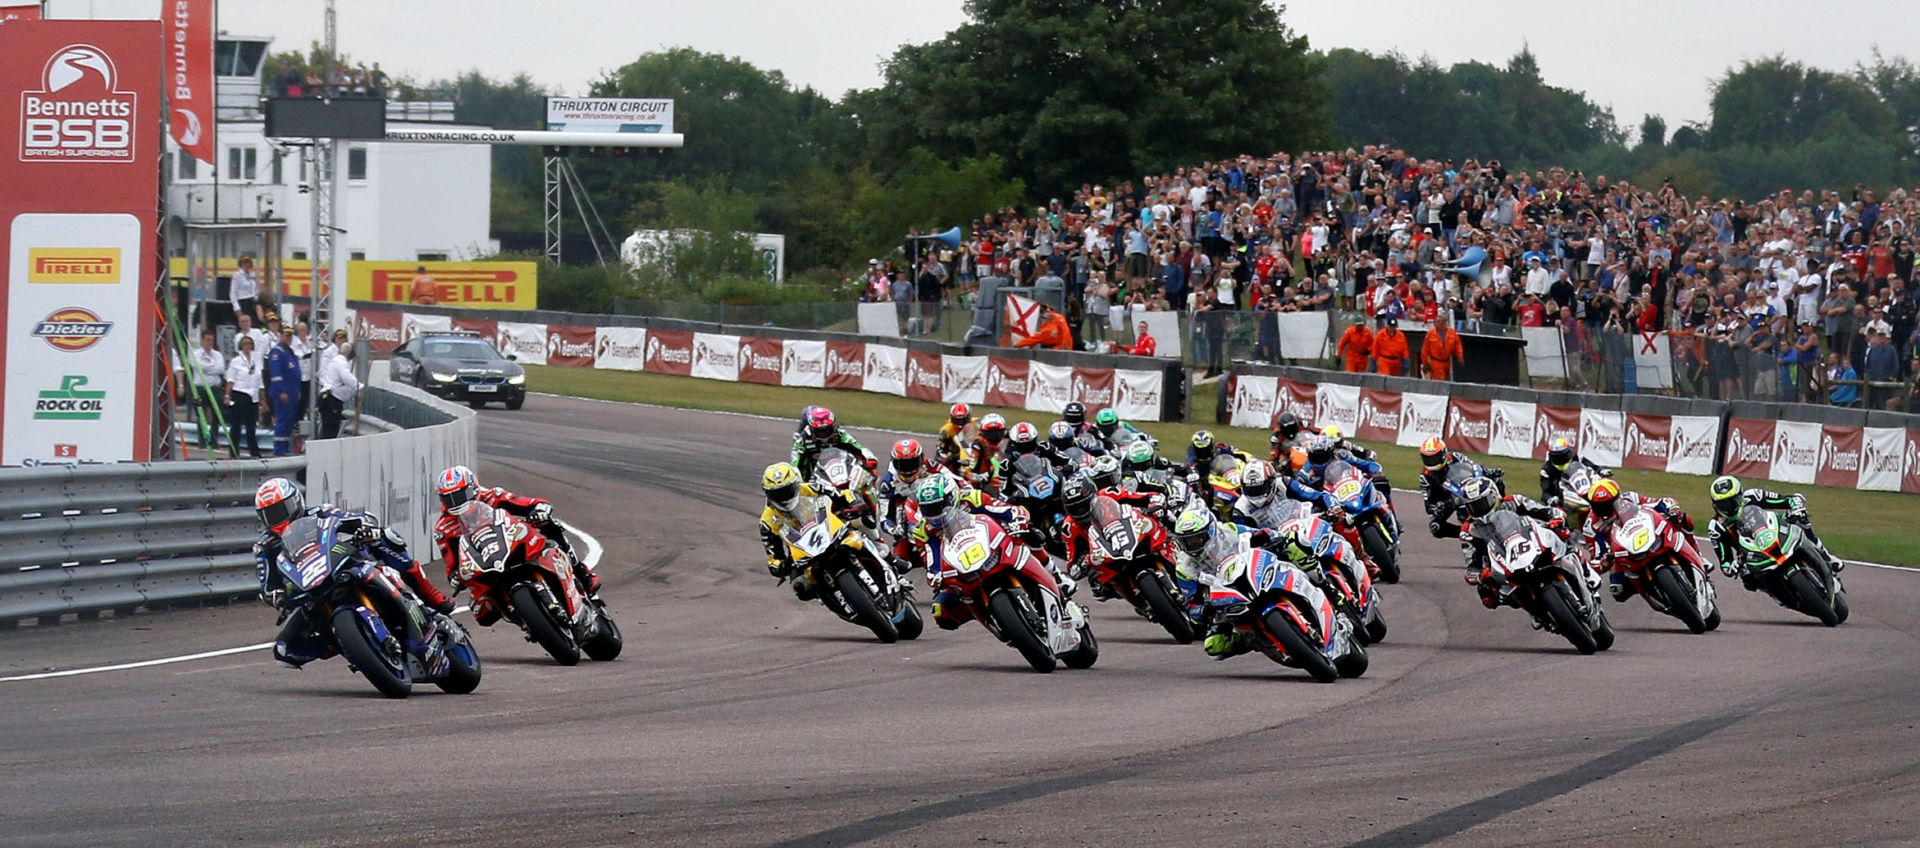 The start of a British Superbike race at Thruxton Circuit in 2019. Photo courtesy MSVR.